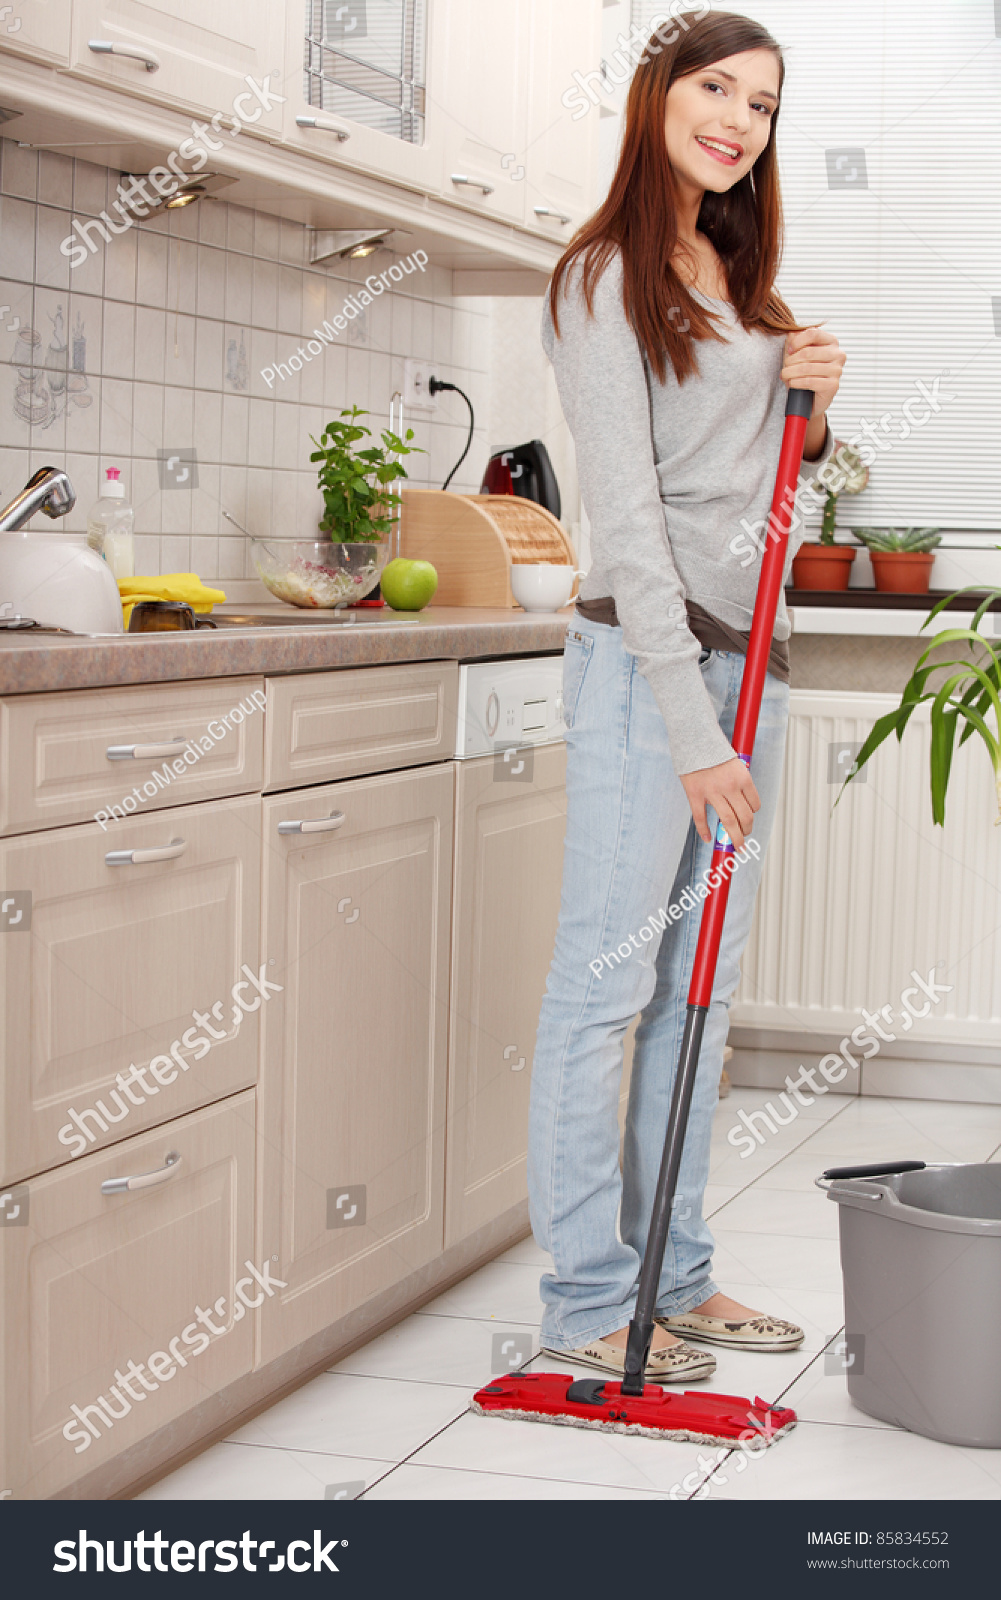 Kitchen Floor Mop Woman Holding Mop Cleaning Kitchen Floor Stock Photo 85834552